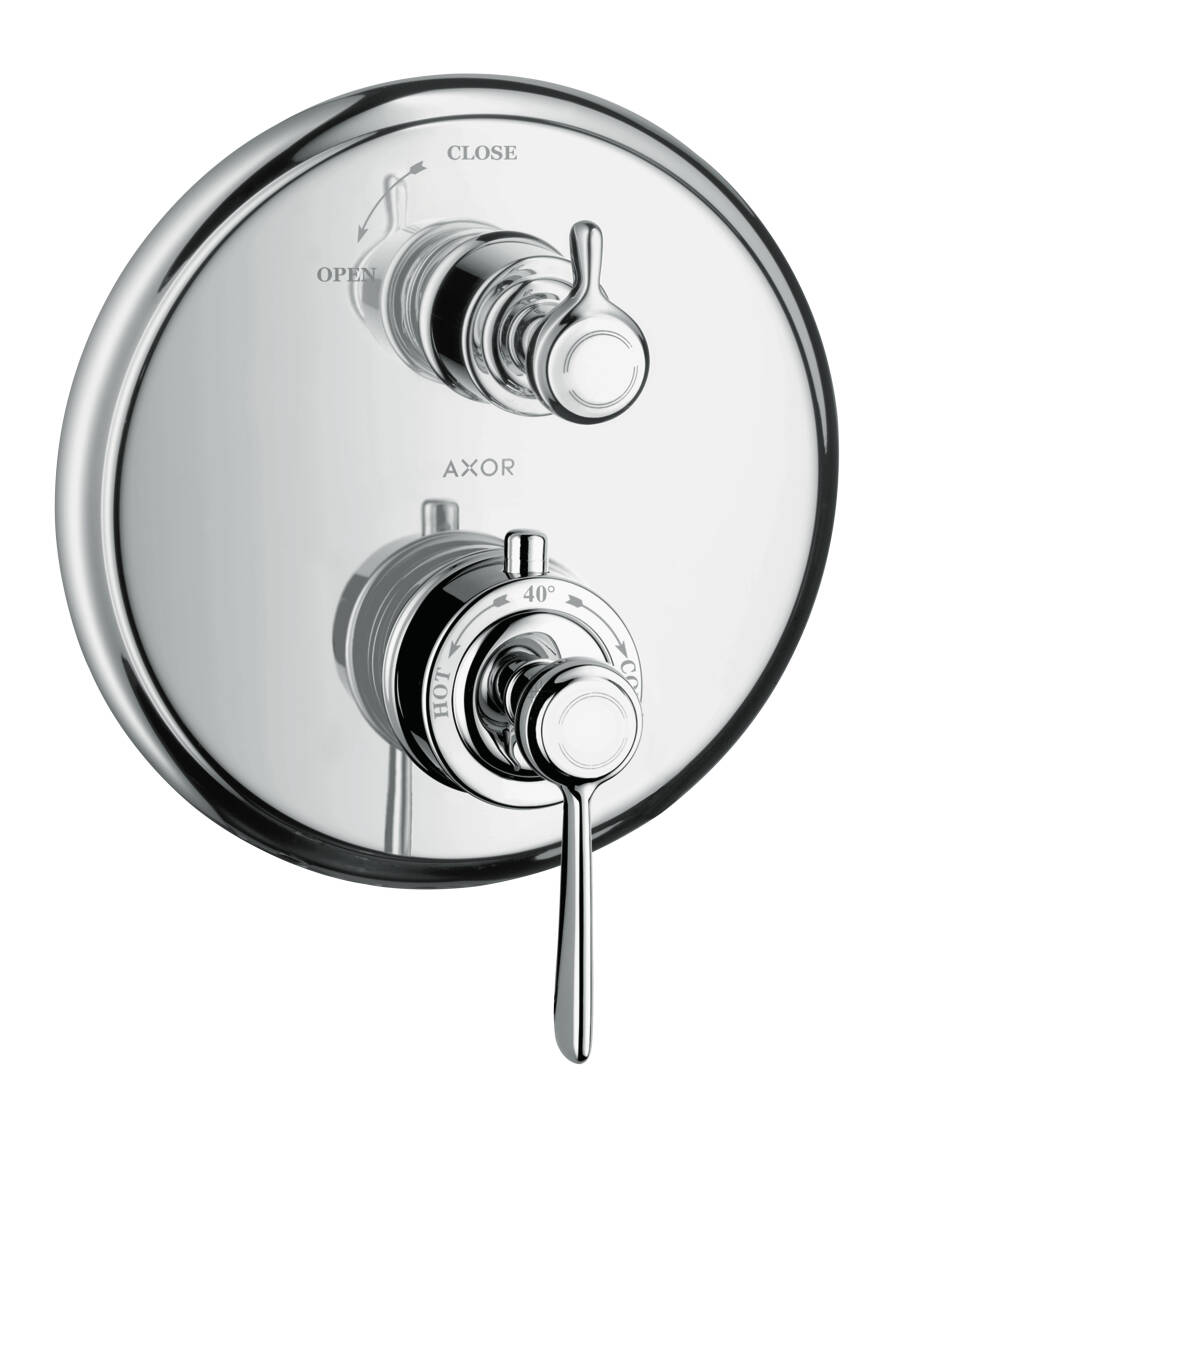 Thermostat for concealed installation with lever handle and shut-off valve, Chrome, 16801000